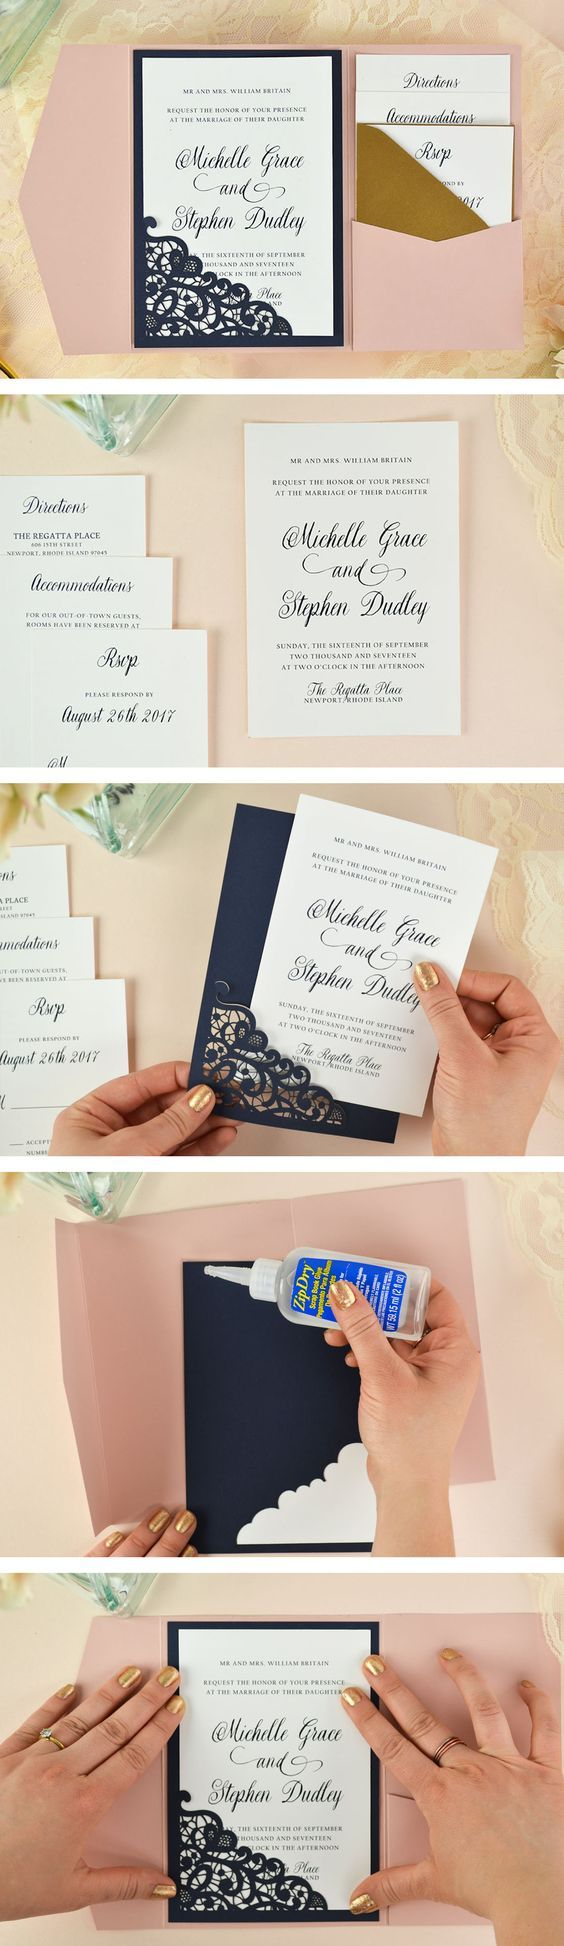 free wedding invitation psd%0A DIY Laser Cut Wedding Invitations   It u    s so easy to DIY this lace laser  pocket invitation